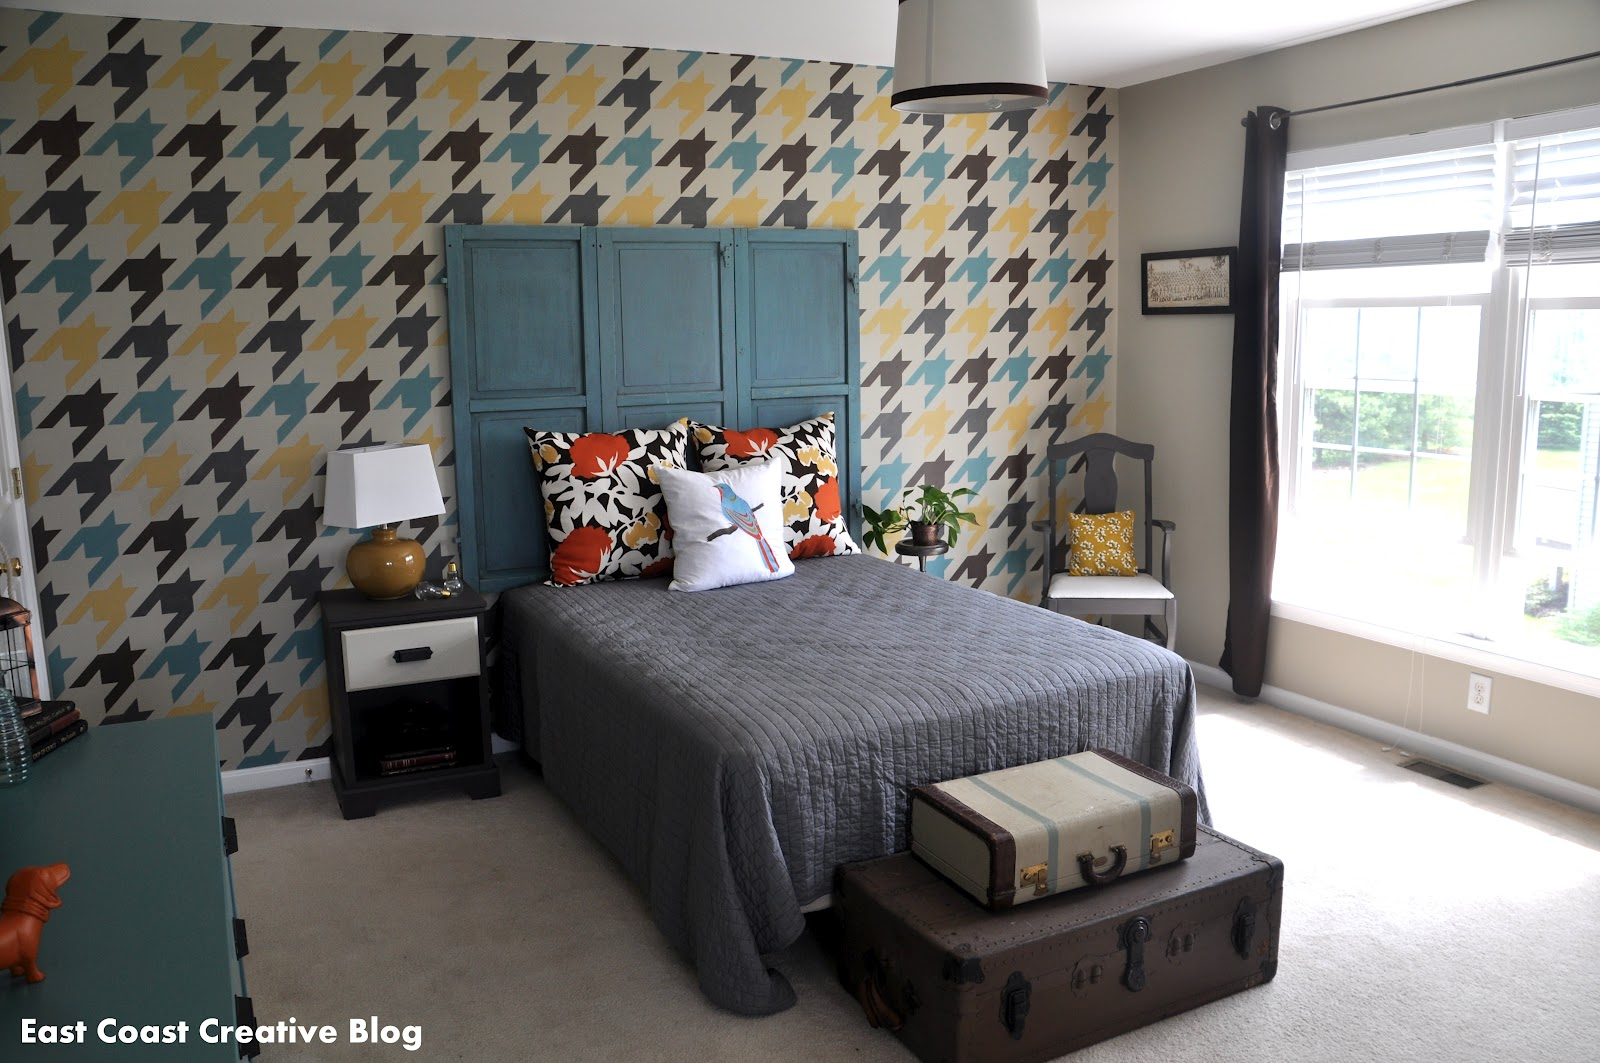 Lacks Bedroom Furniture Tips For Accessorizing Your Space Superfab Room Redesign East